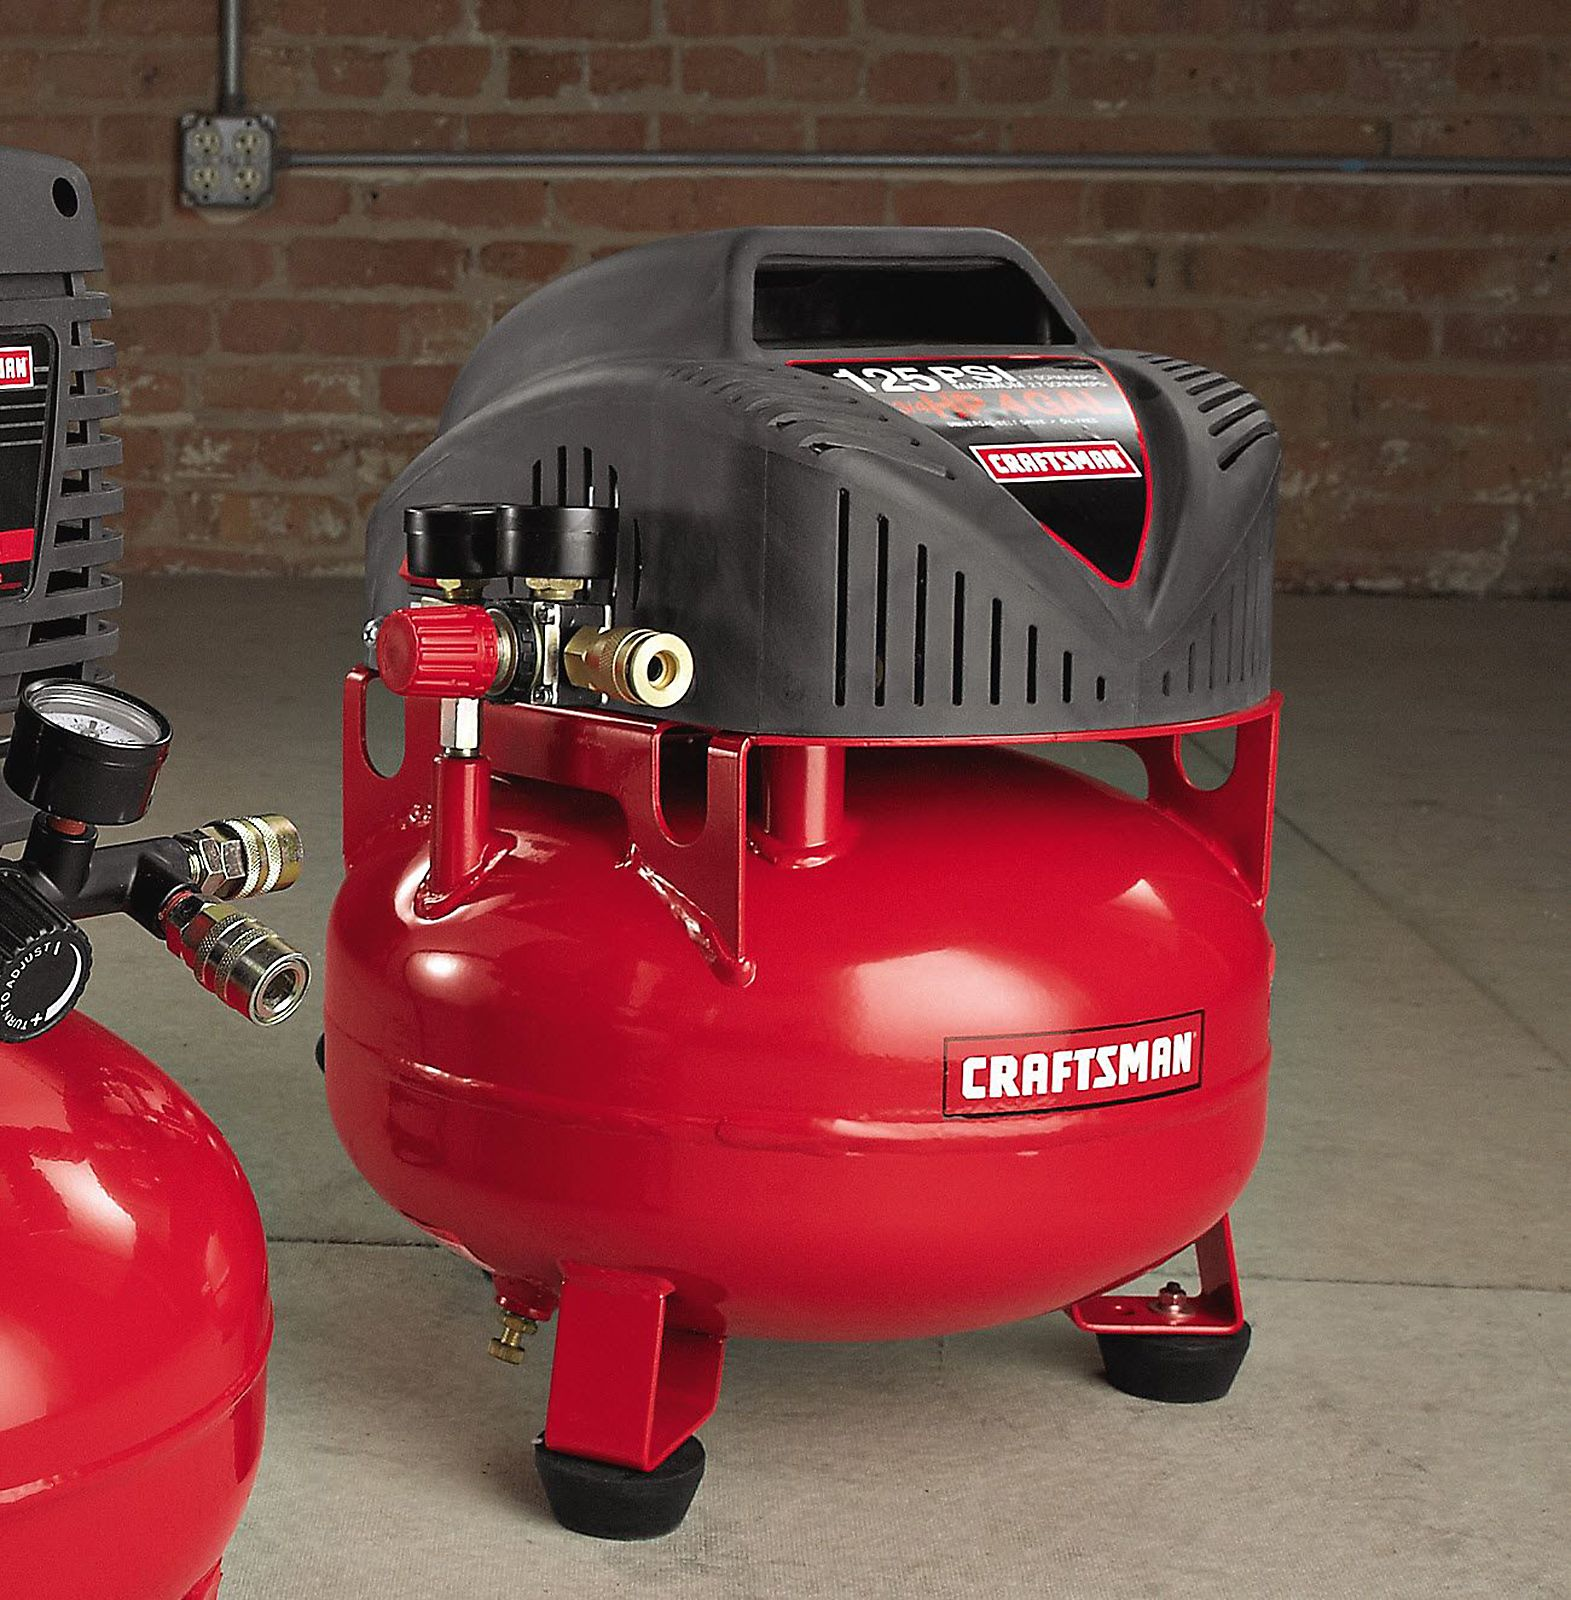 Craftsman 4 Gallon Oil Free Pancake Air Compressor 104.99